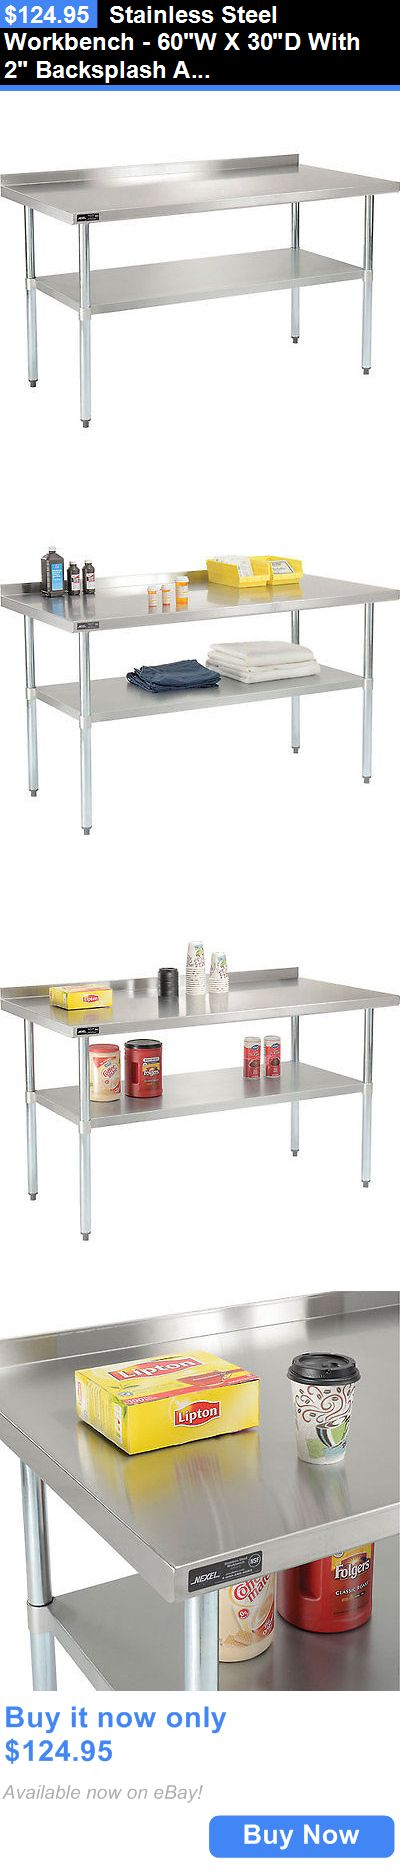 Business Industrial: Stainless Steel Workbench - 60W X 30D With 2 Backsplash And Undershelf BUY IT NOW ONLY: $124.95